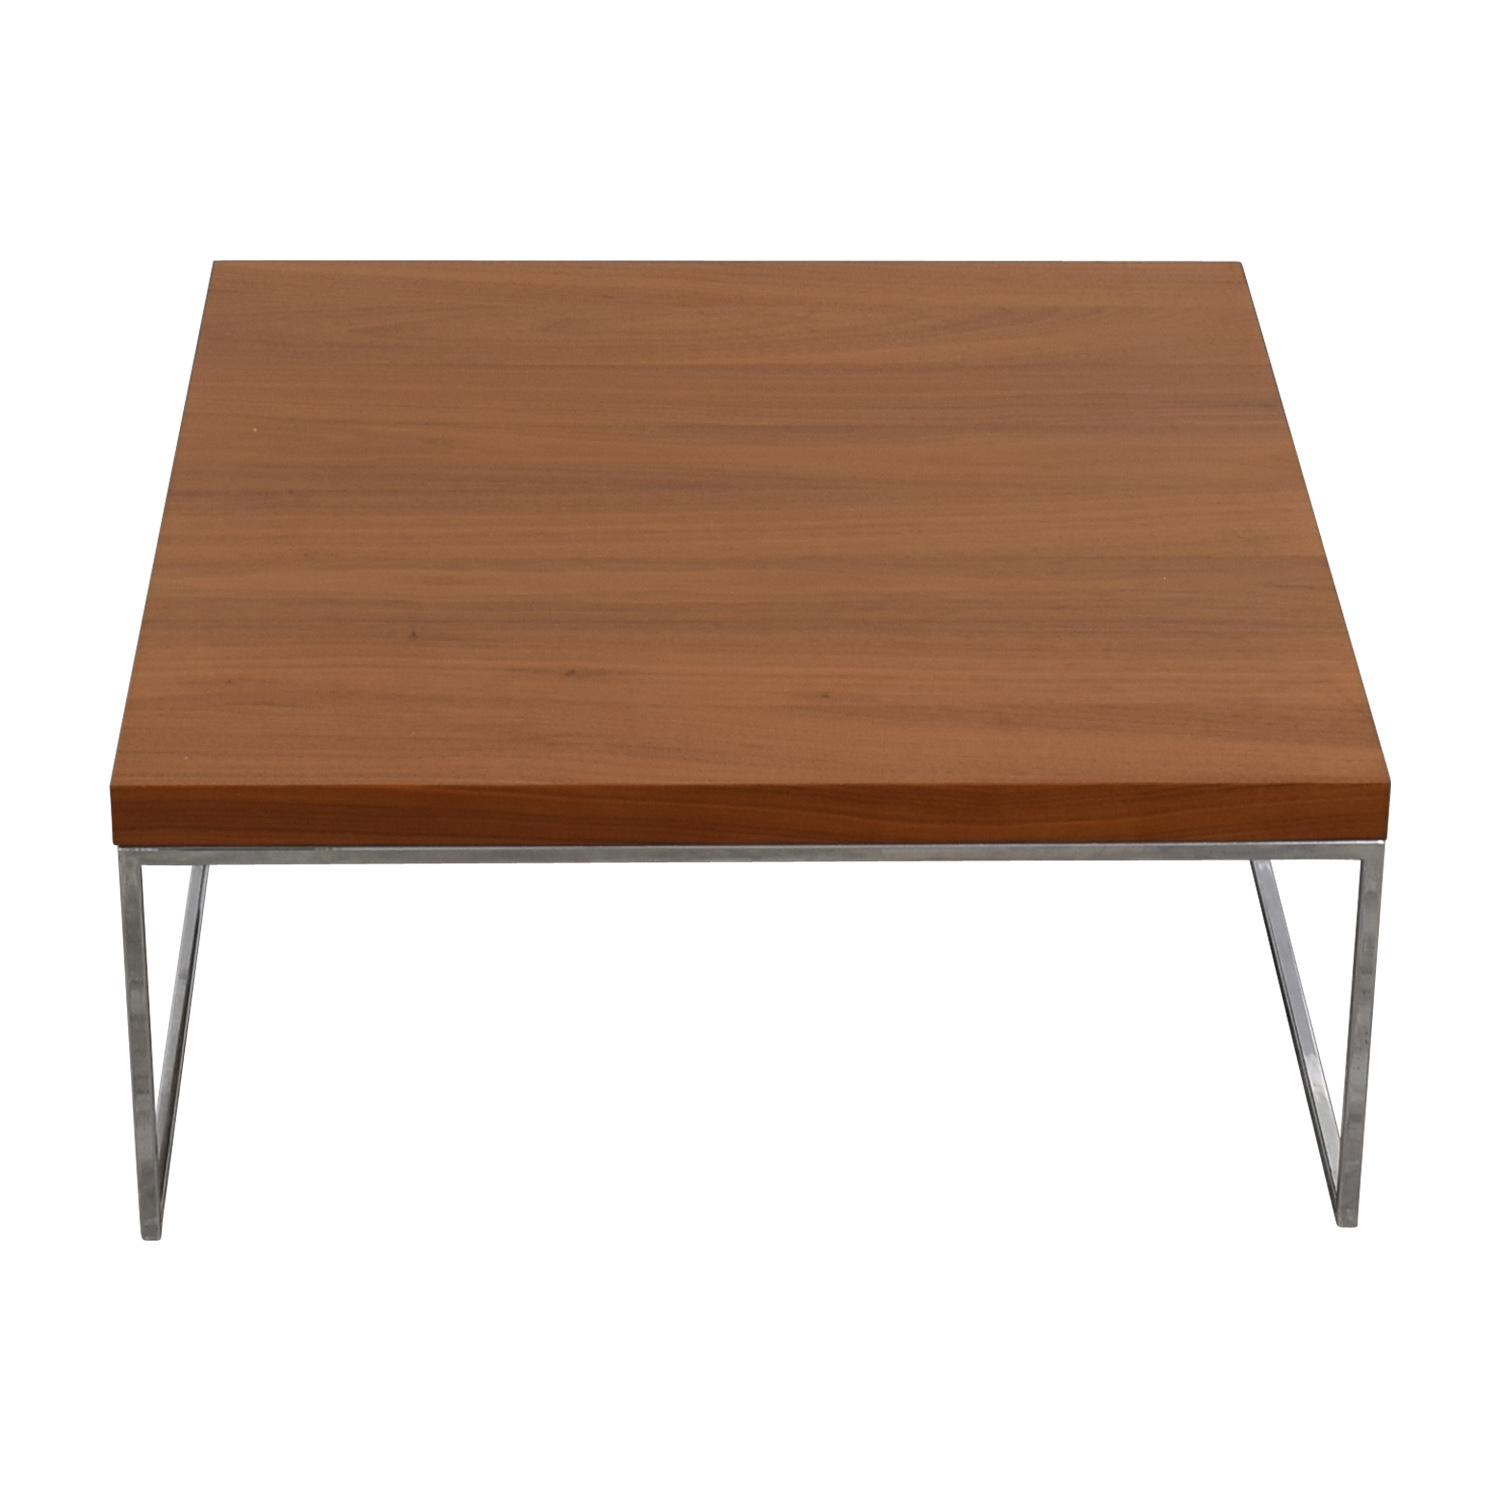 BoConcept BoConcept Lugo Wood and Chrome Coffee Table dimensions